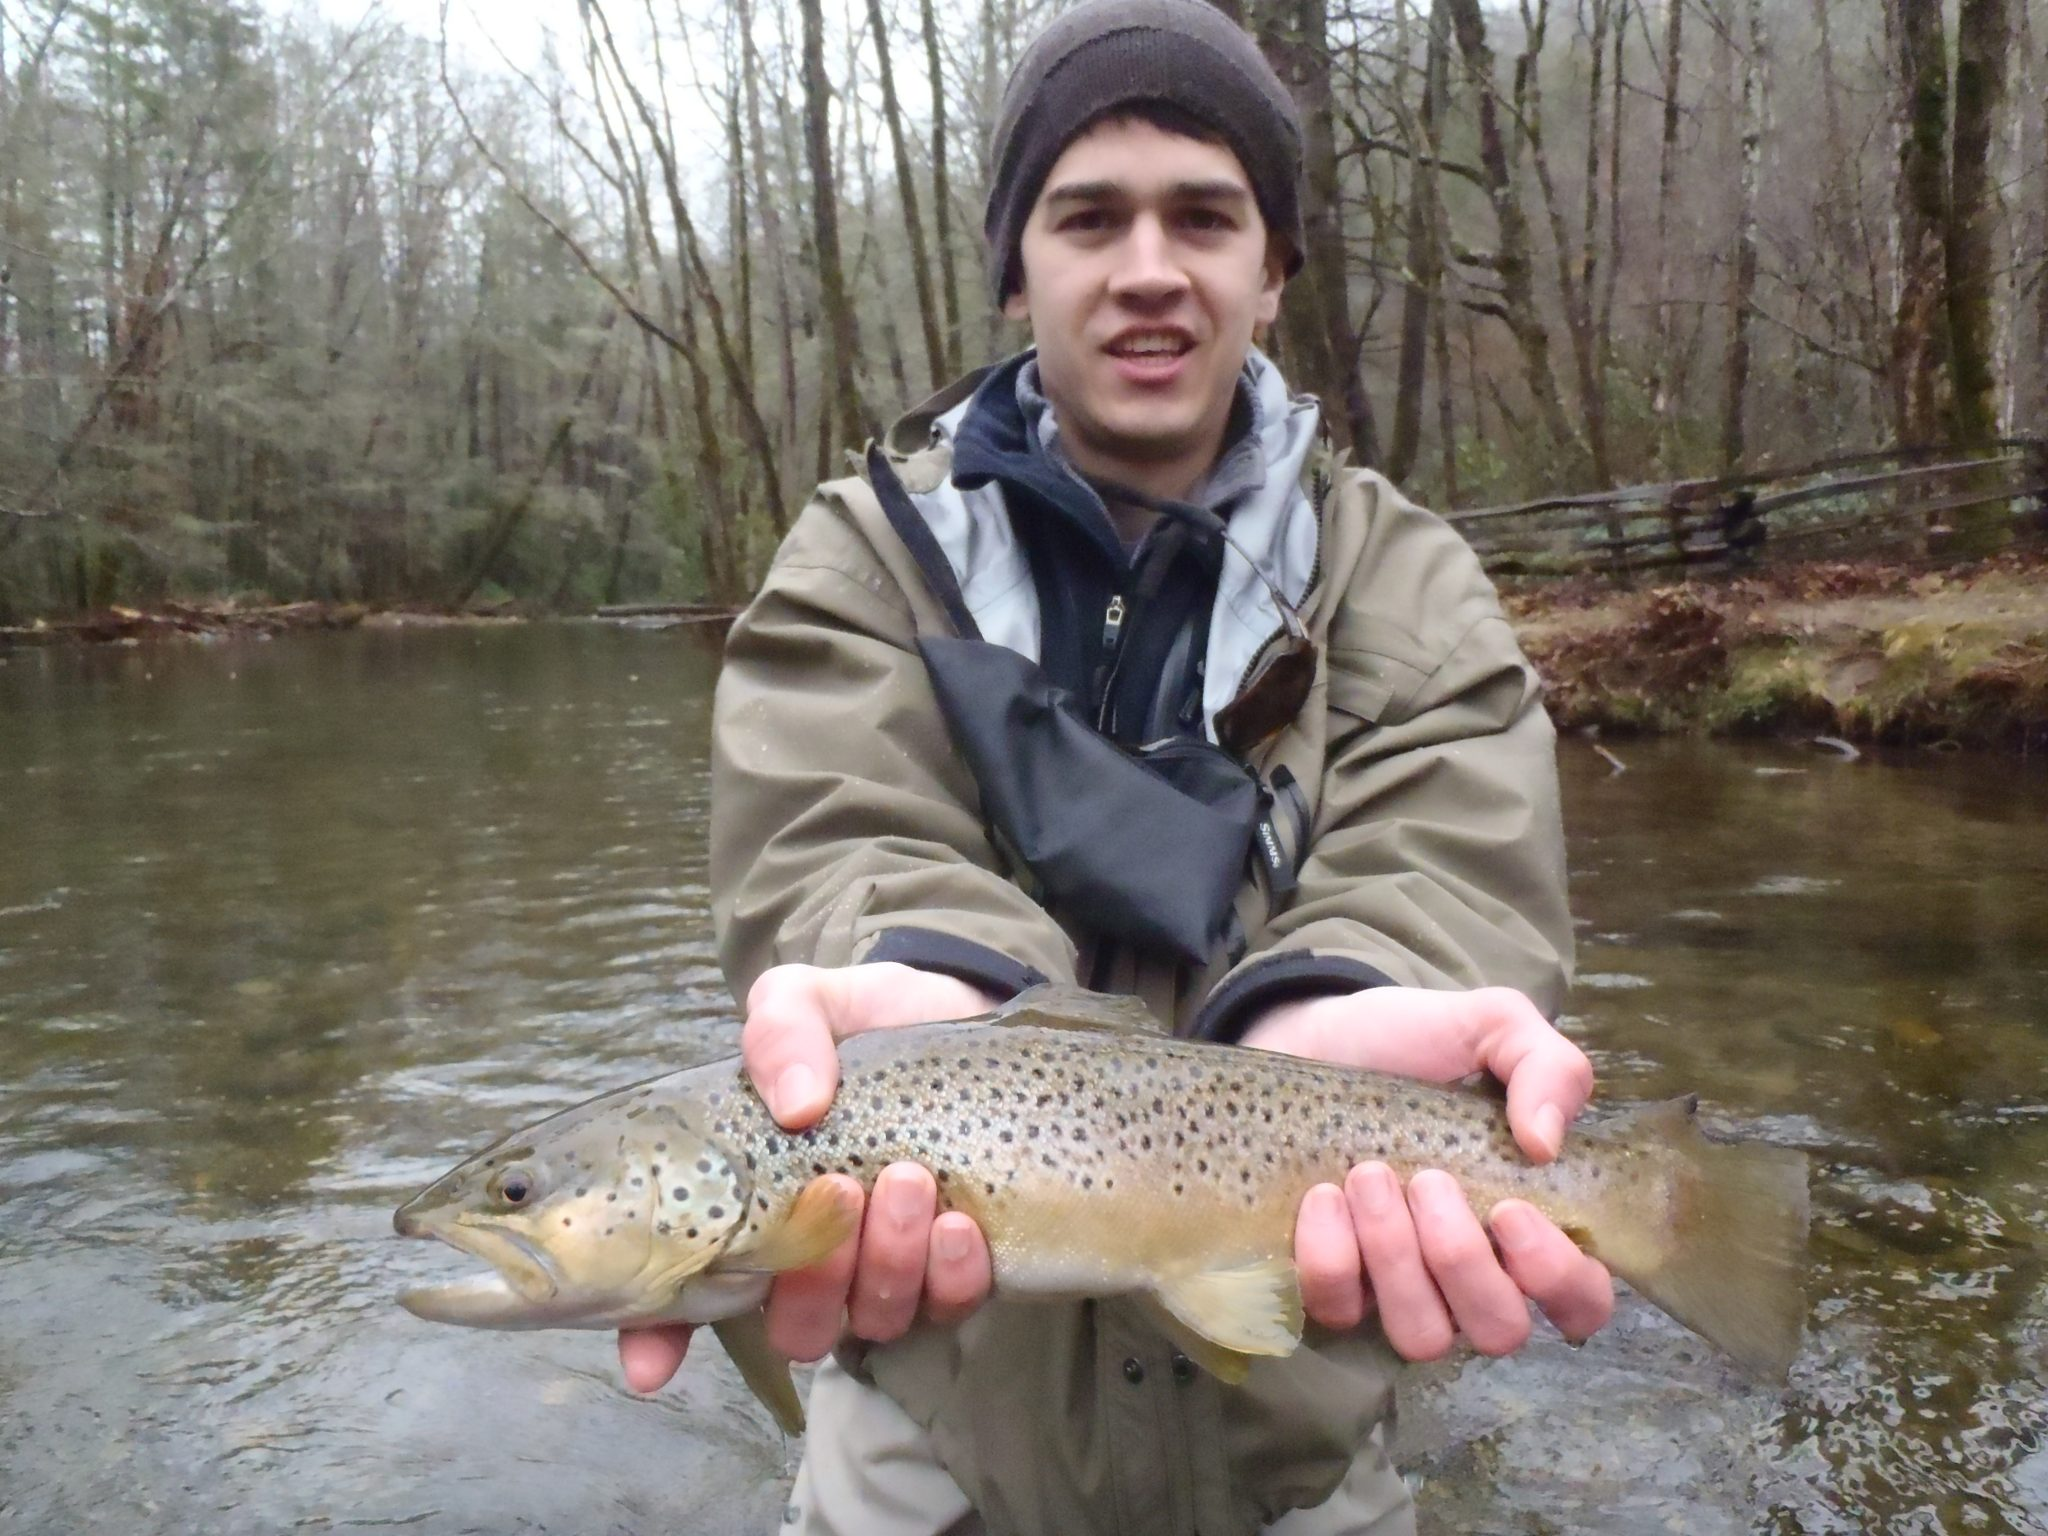 Davidson river fishing report week of march 13 curtis for Davidson river fishing report